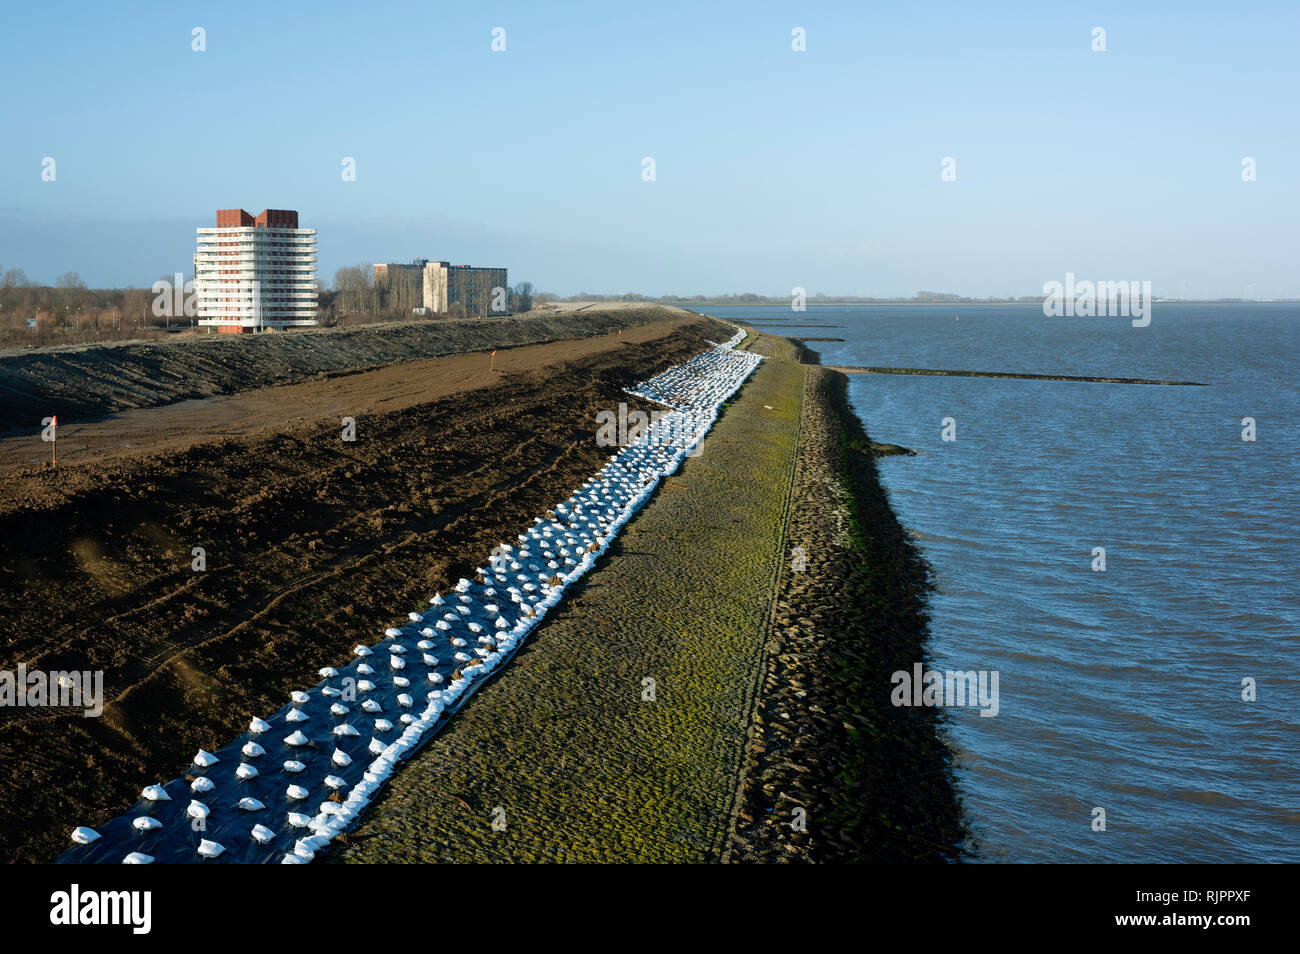 Coastal landscape with reinforced sea dyke to withstand future storms, Netherlands Stock Photo